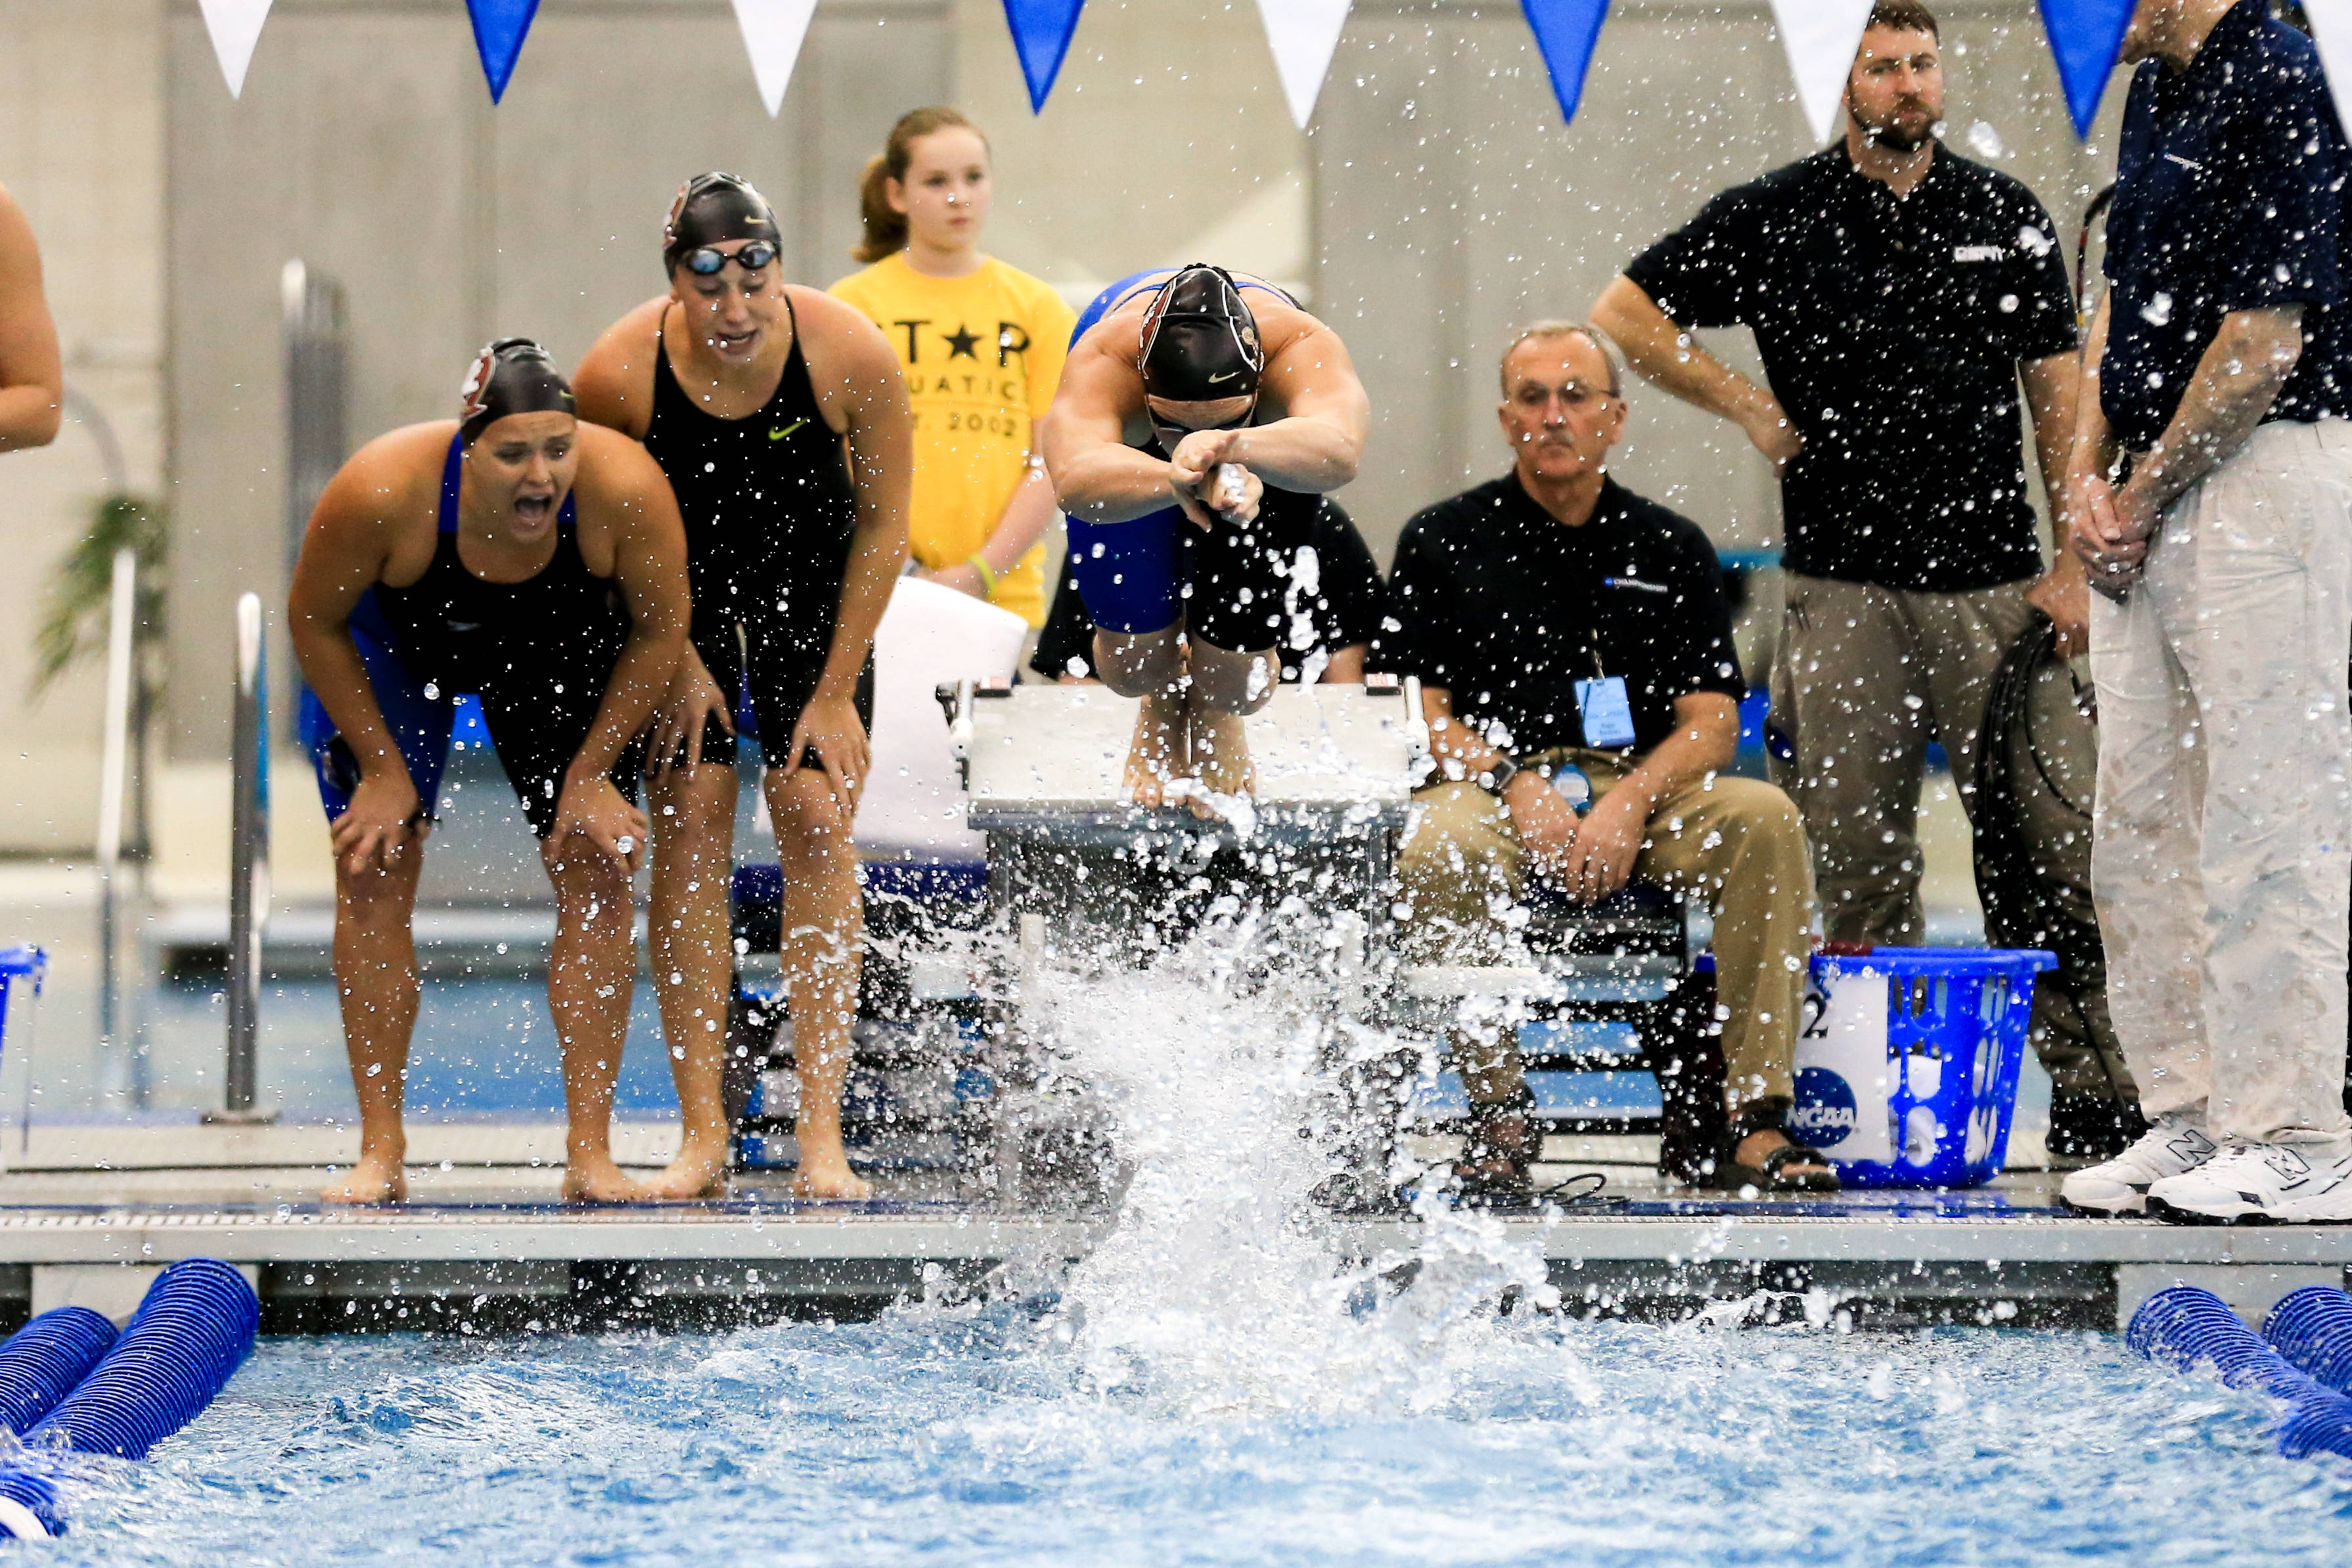 Bianca Spinazzola and Natalie Pierce cheer on their teammates in the 200 medley relay.